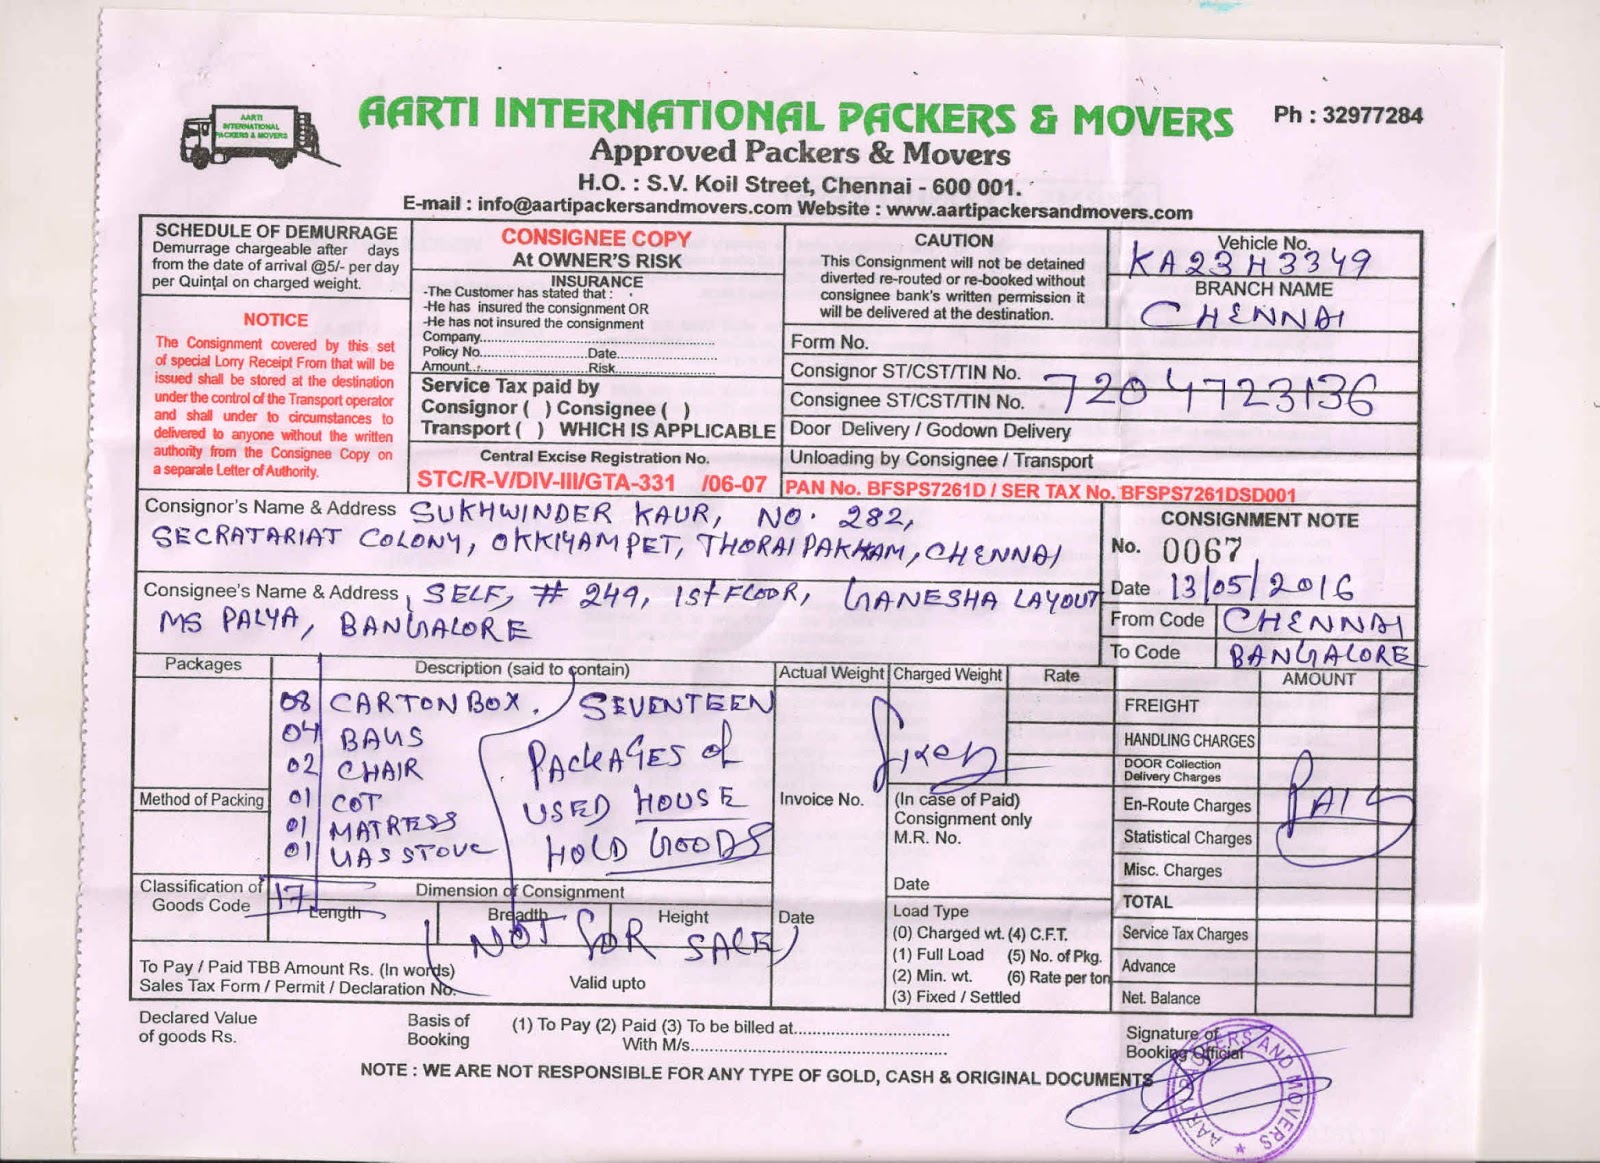 transport bill in chennai loading unloading bill in chennai mov bill in chennai packers and movers bill format in chennai packers and movers bill